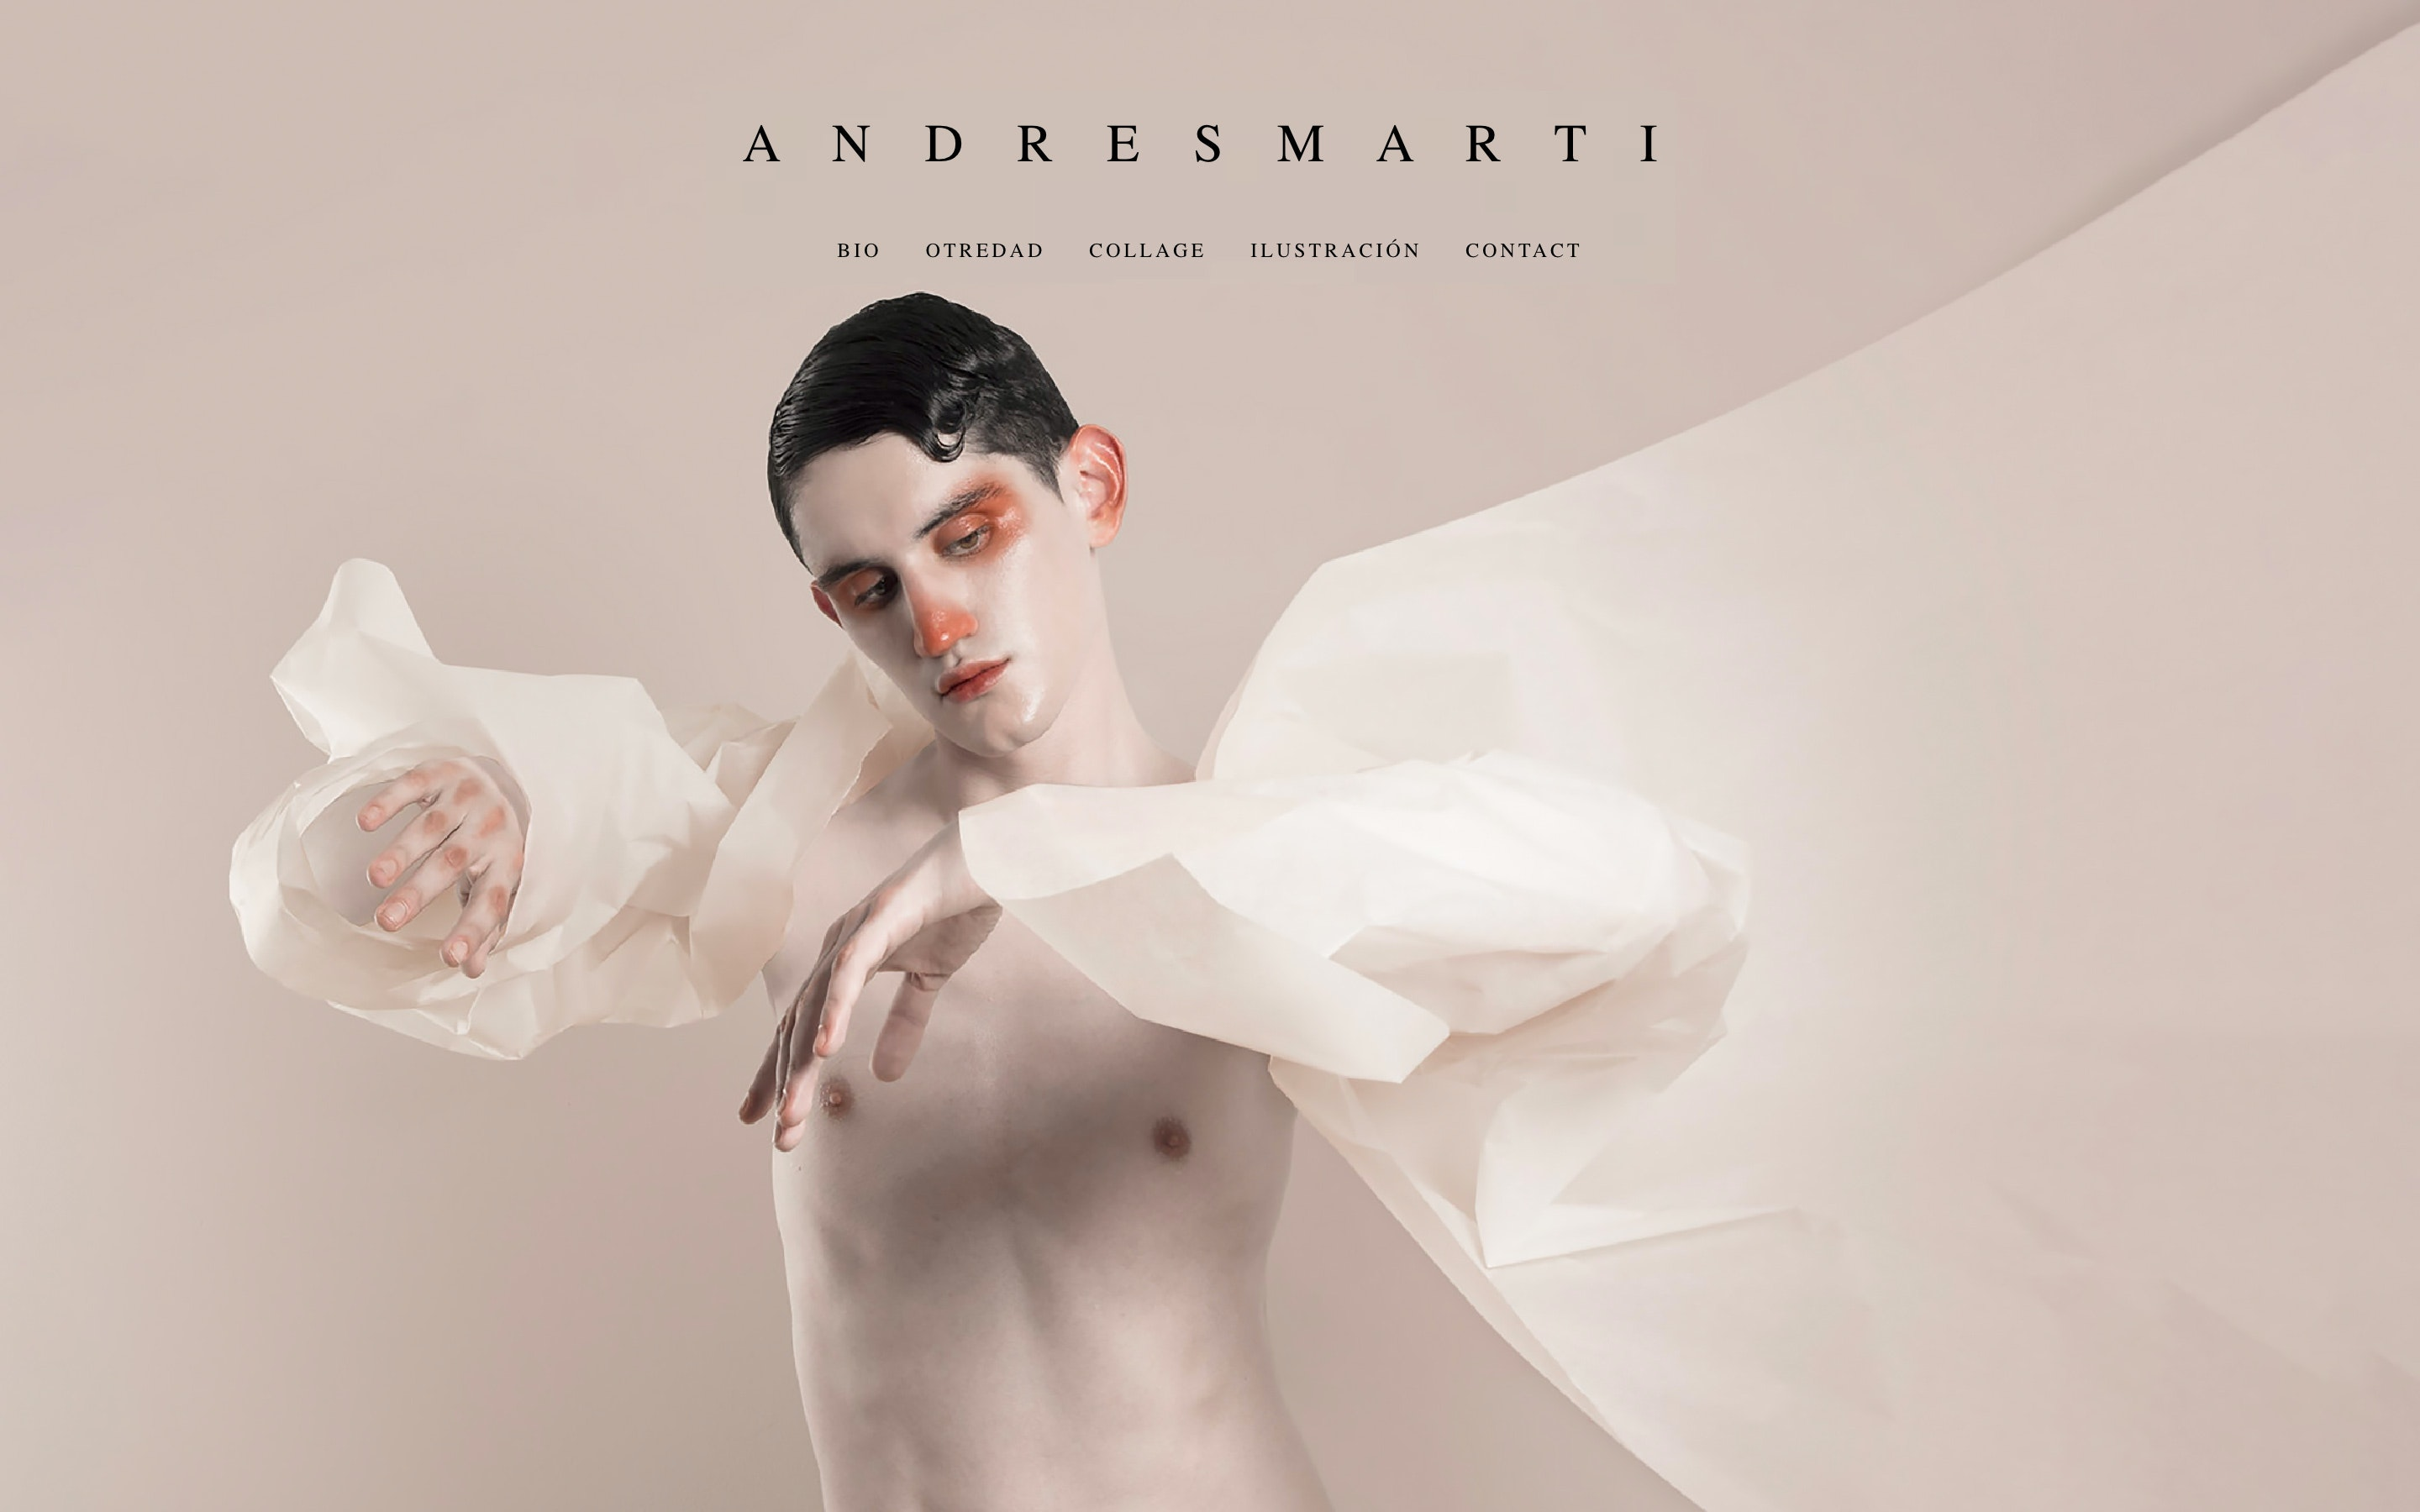 Andres Marti